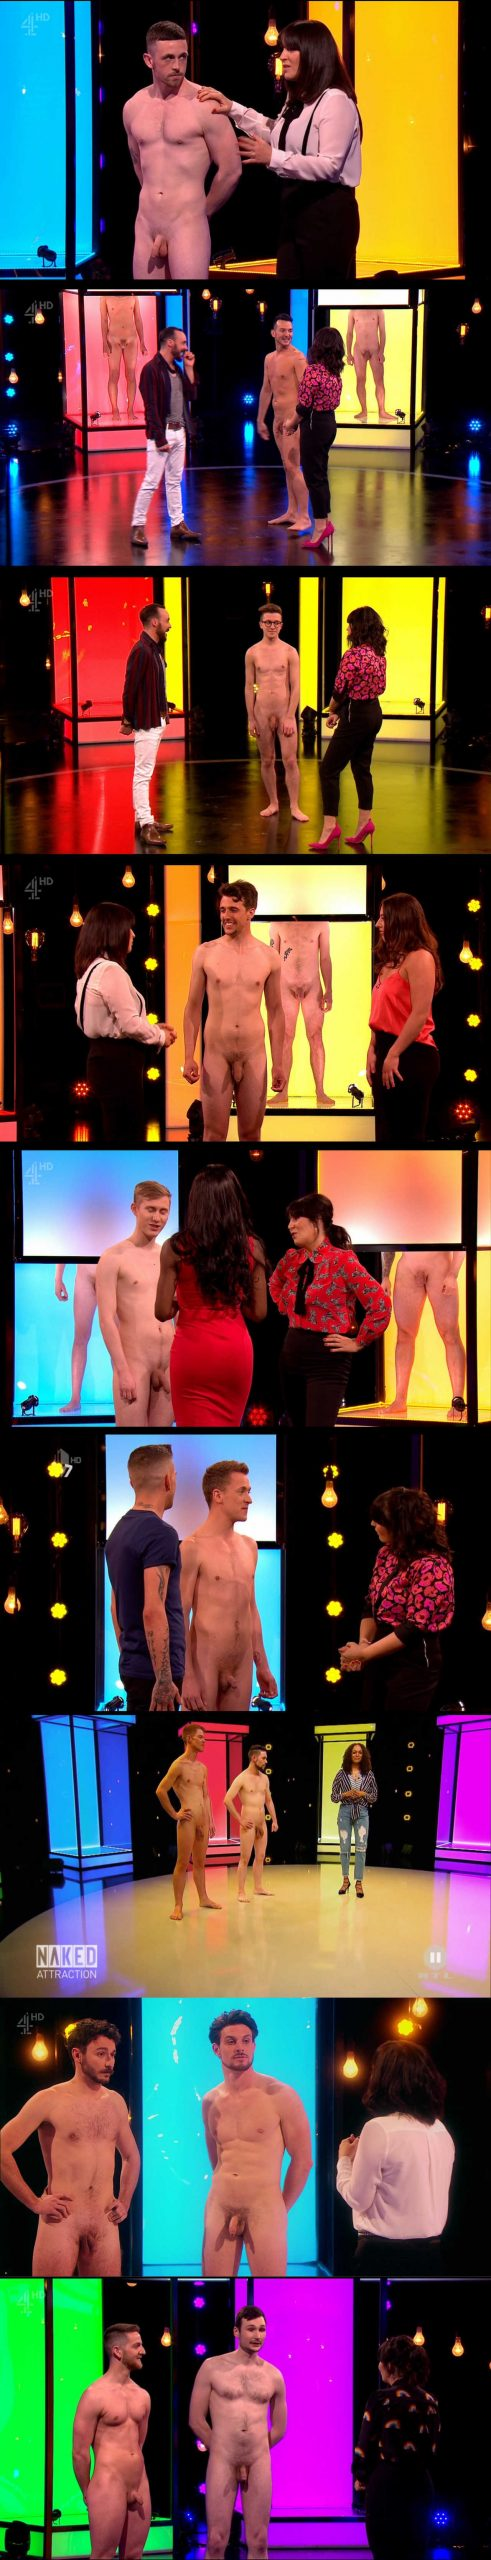 lots of guys going full frontal naked on tv for a dating show